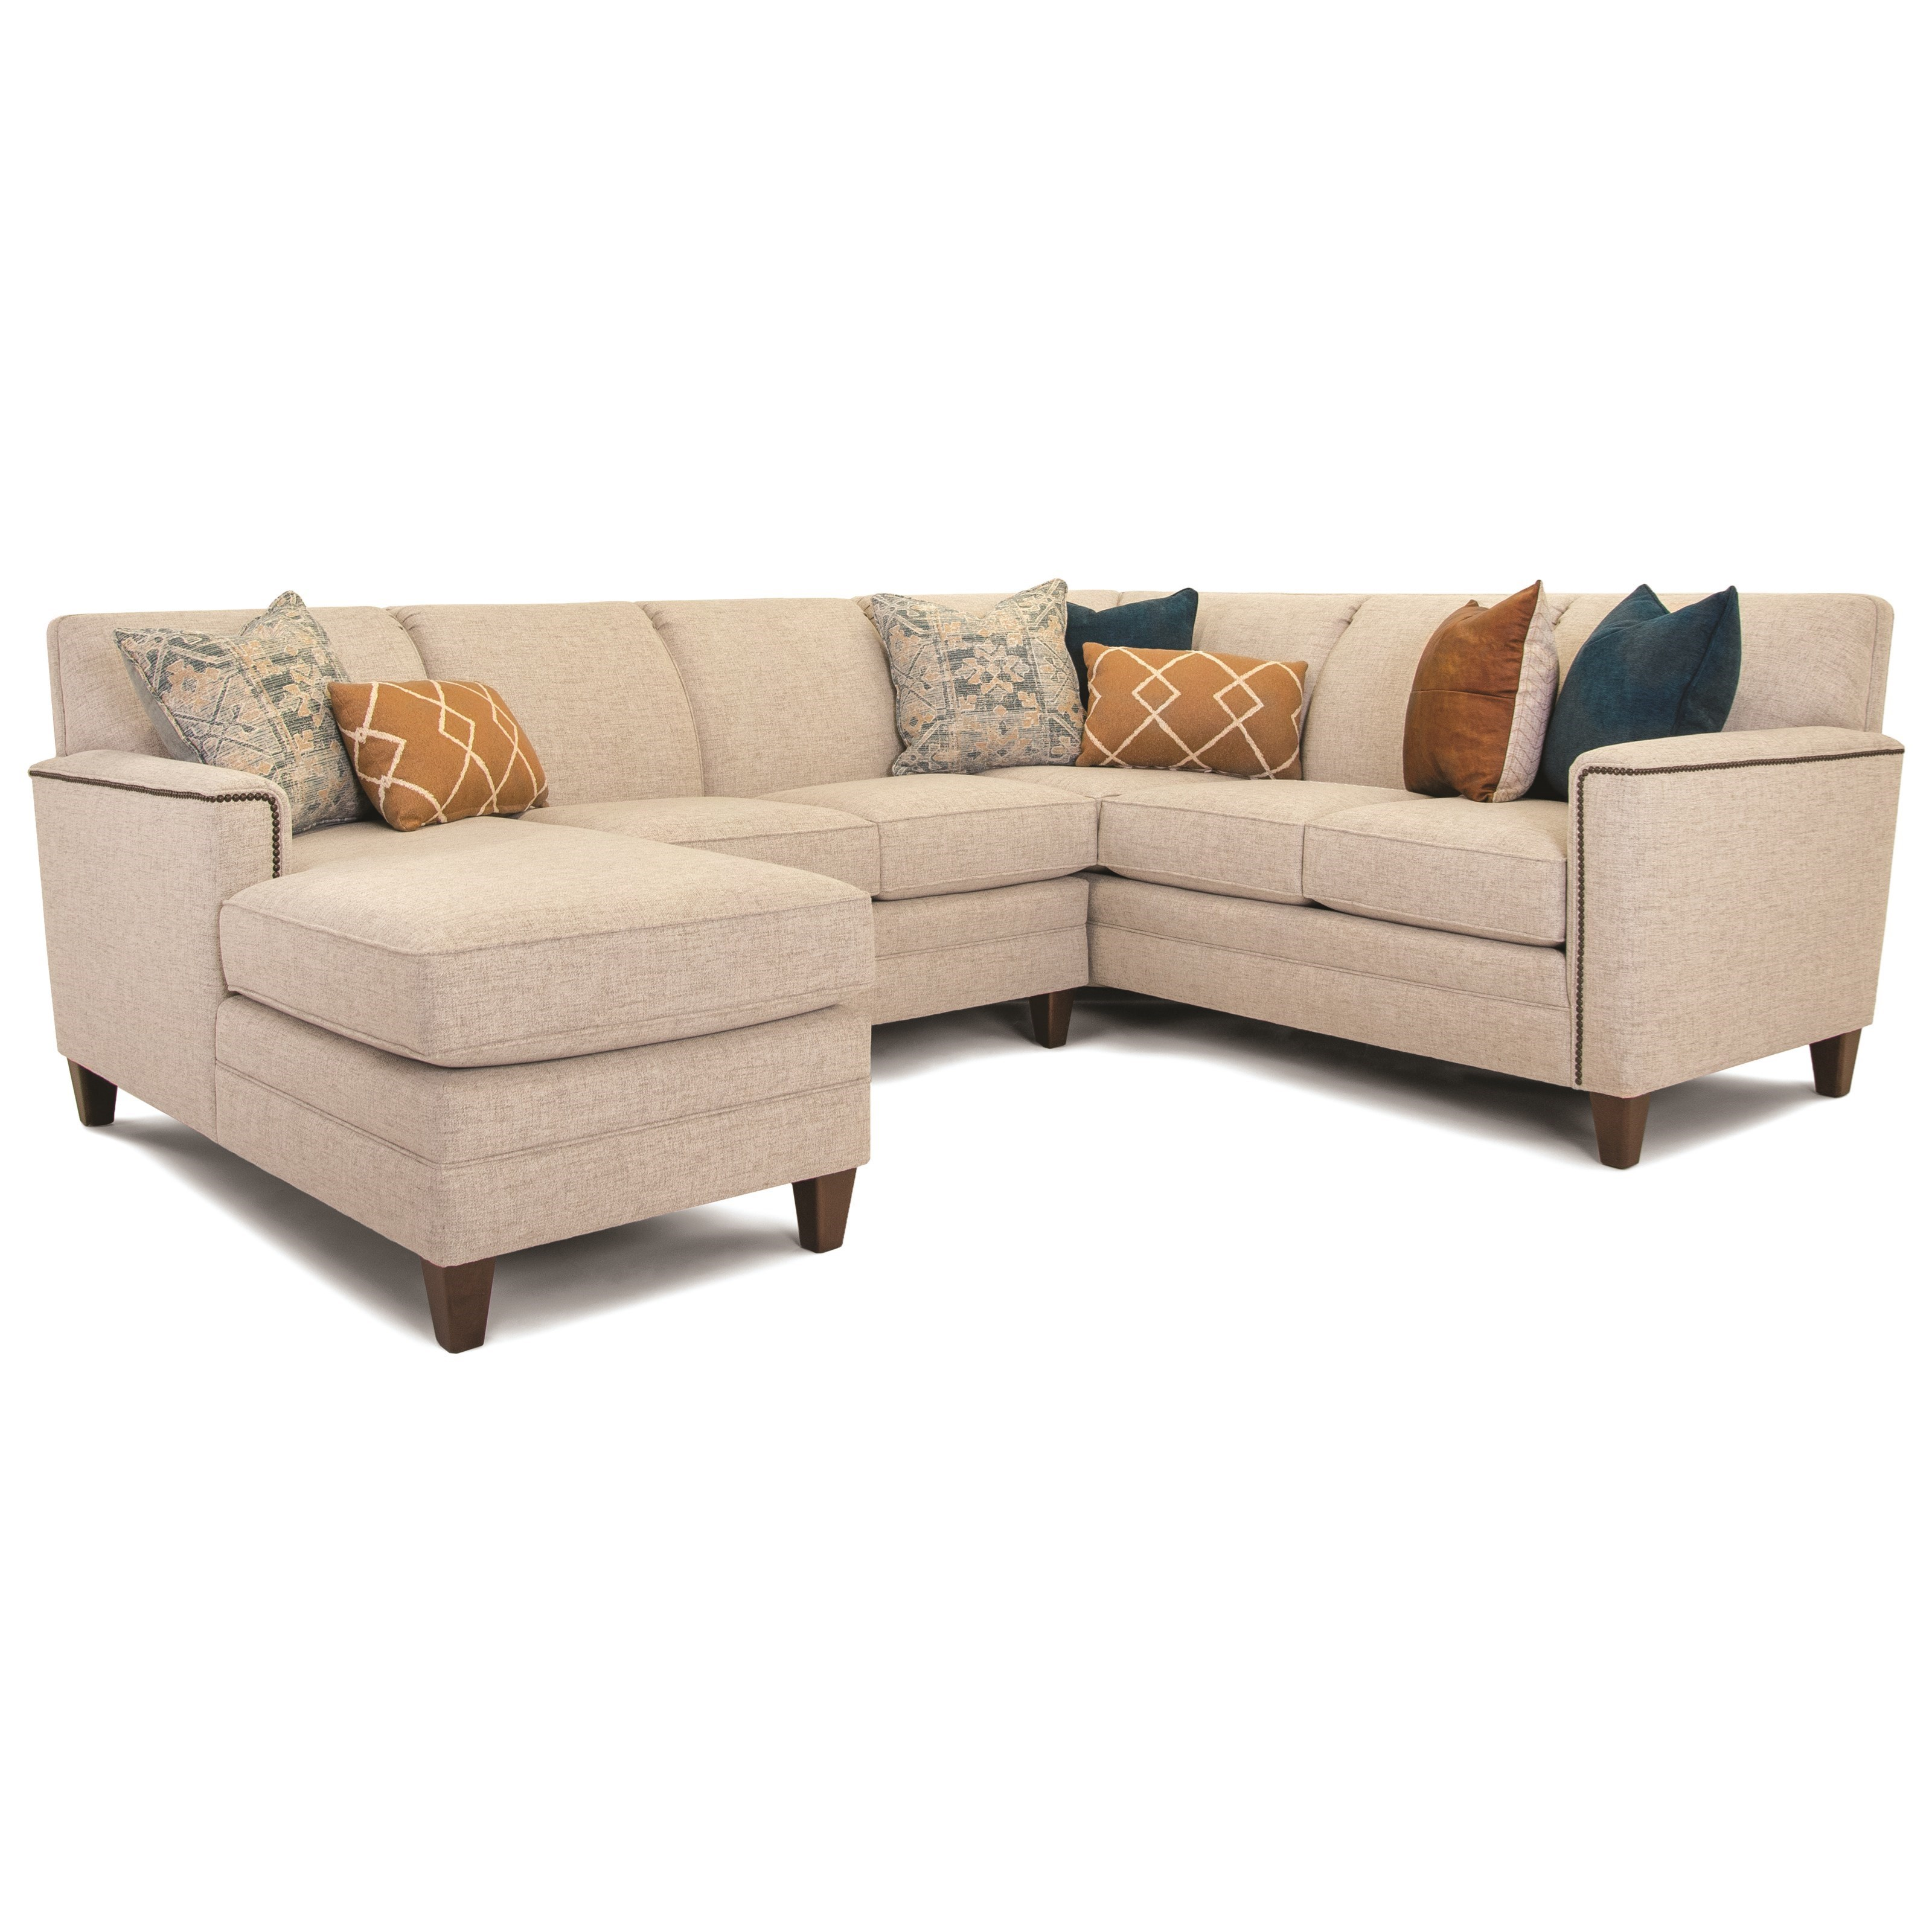 Build Your Own 3000 Series Customizable 3-Piece Chaise Sectional by Smith Brothers at Pilgrim Furniture City